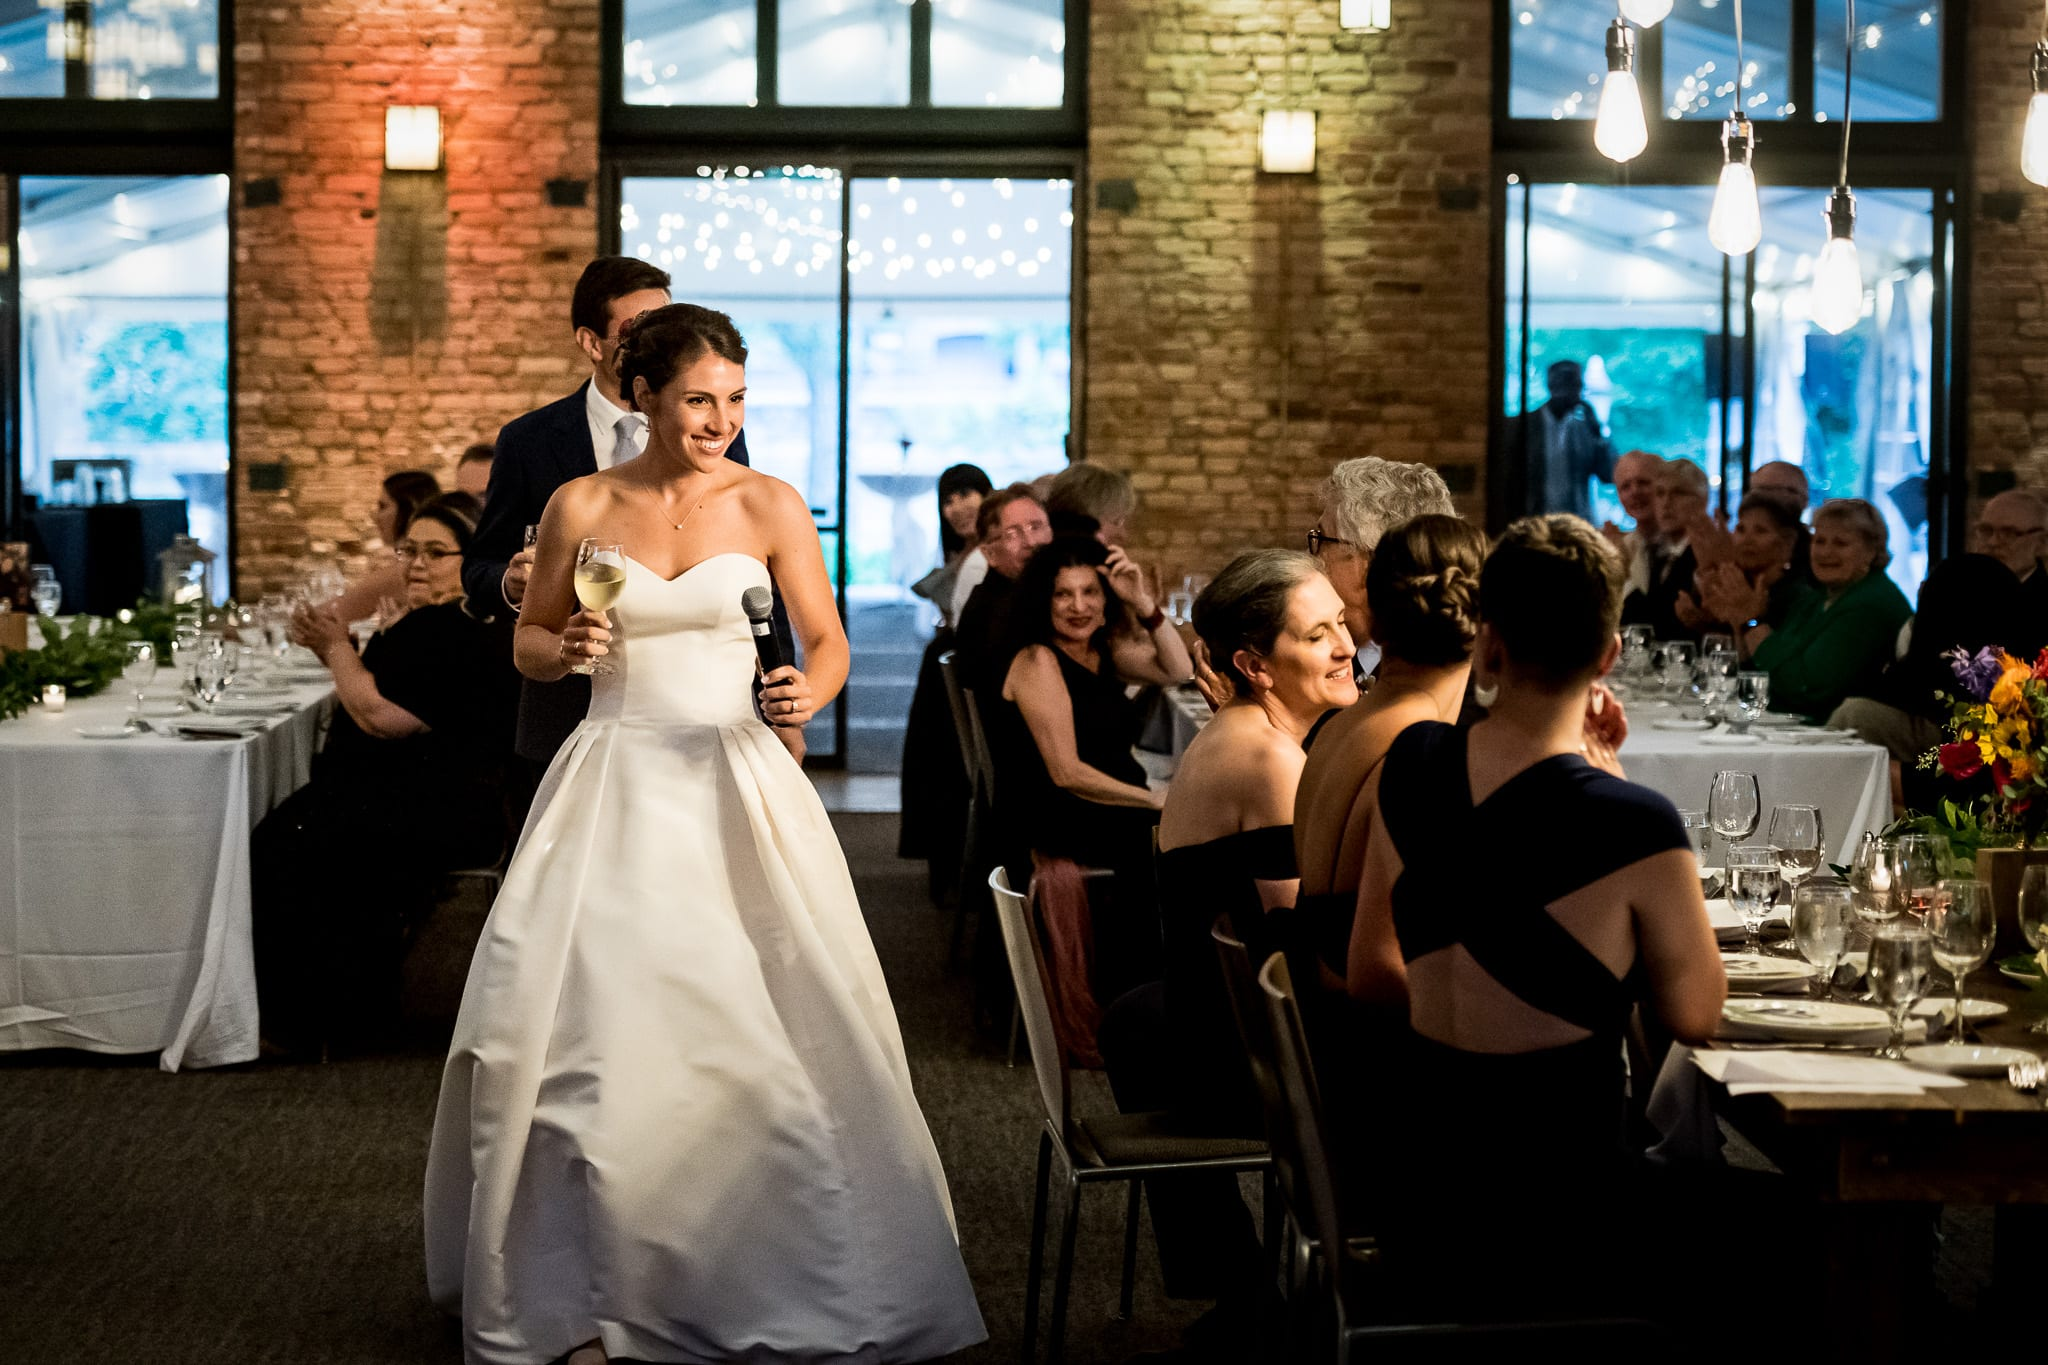 Bride and groom enter the Nicollet Island Pavilion for their grand entrance on their wedding day